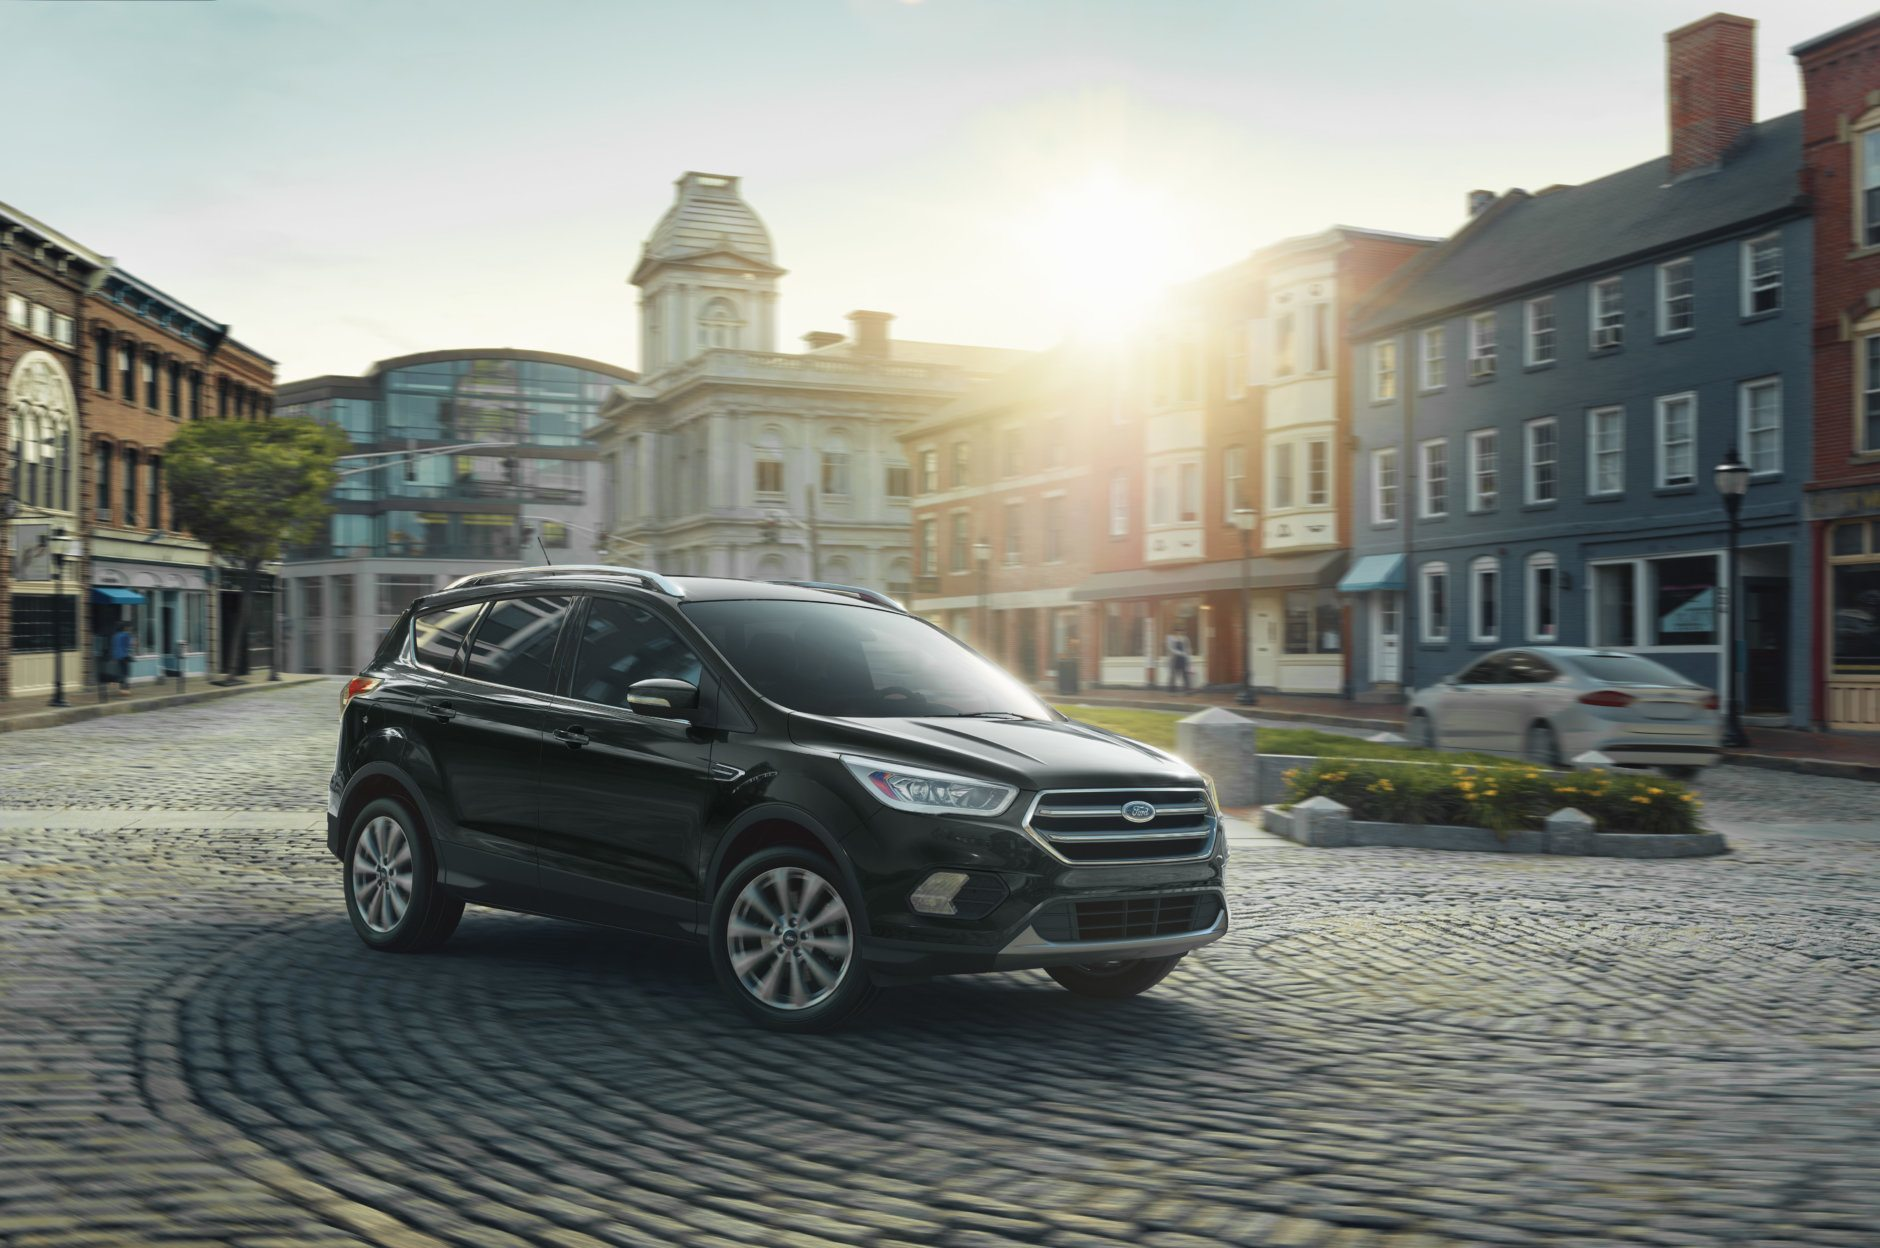 2019 Ford Escape: 0% financing for 60 months plus up to $2,750 bonus cash (Courtesy Ford Motor Co.)